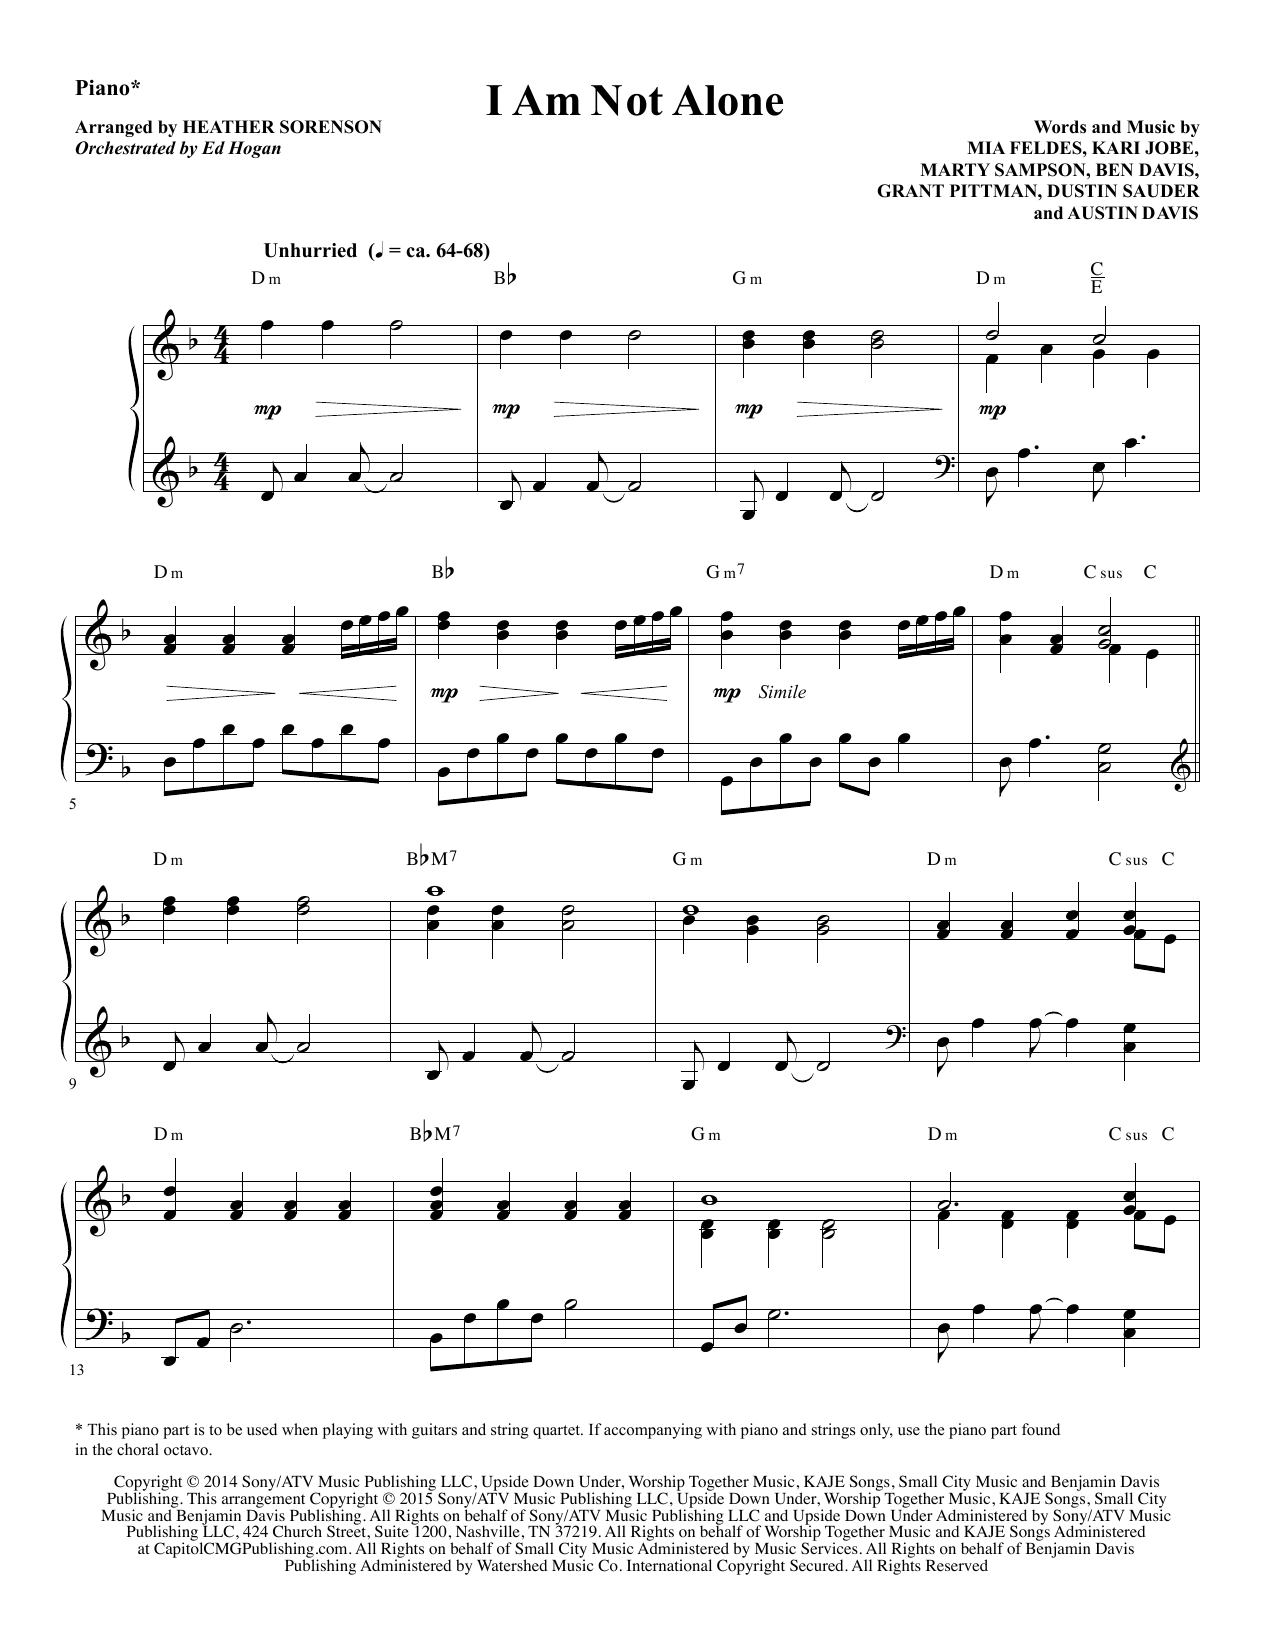 I Am Not Alone - Piano Sheet Music